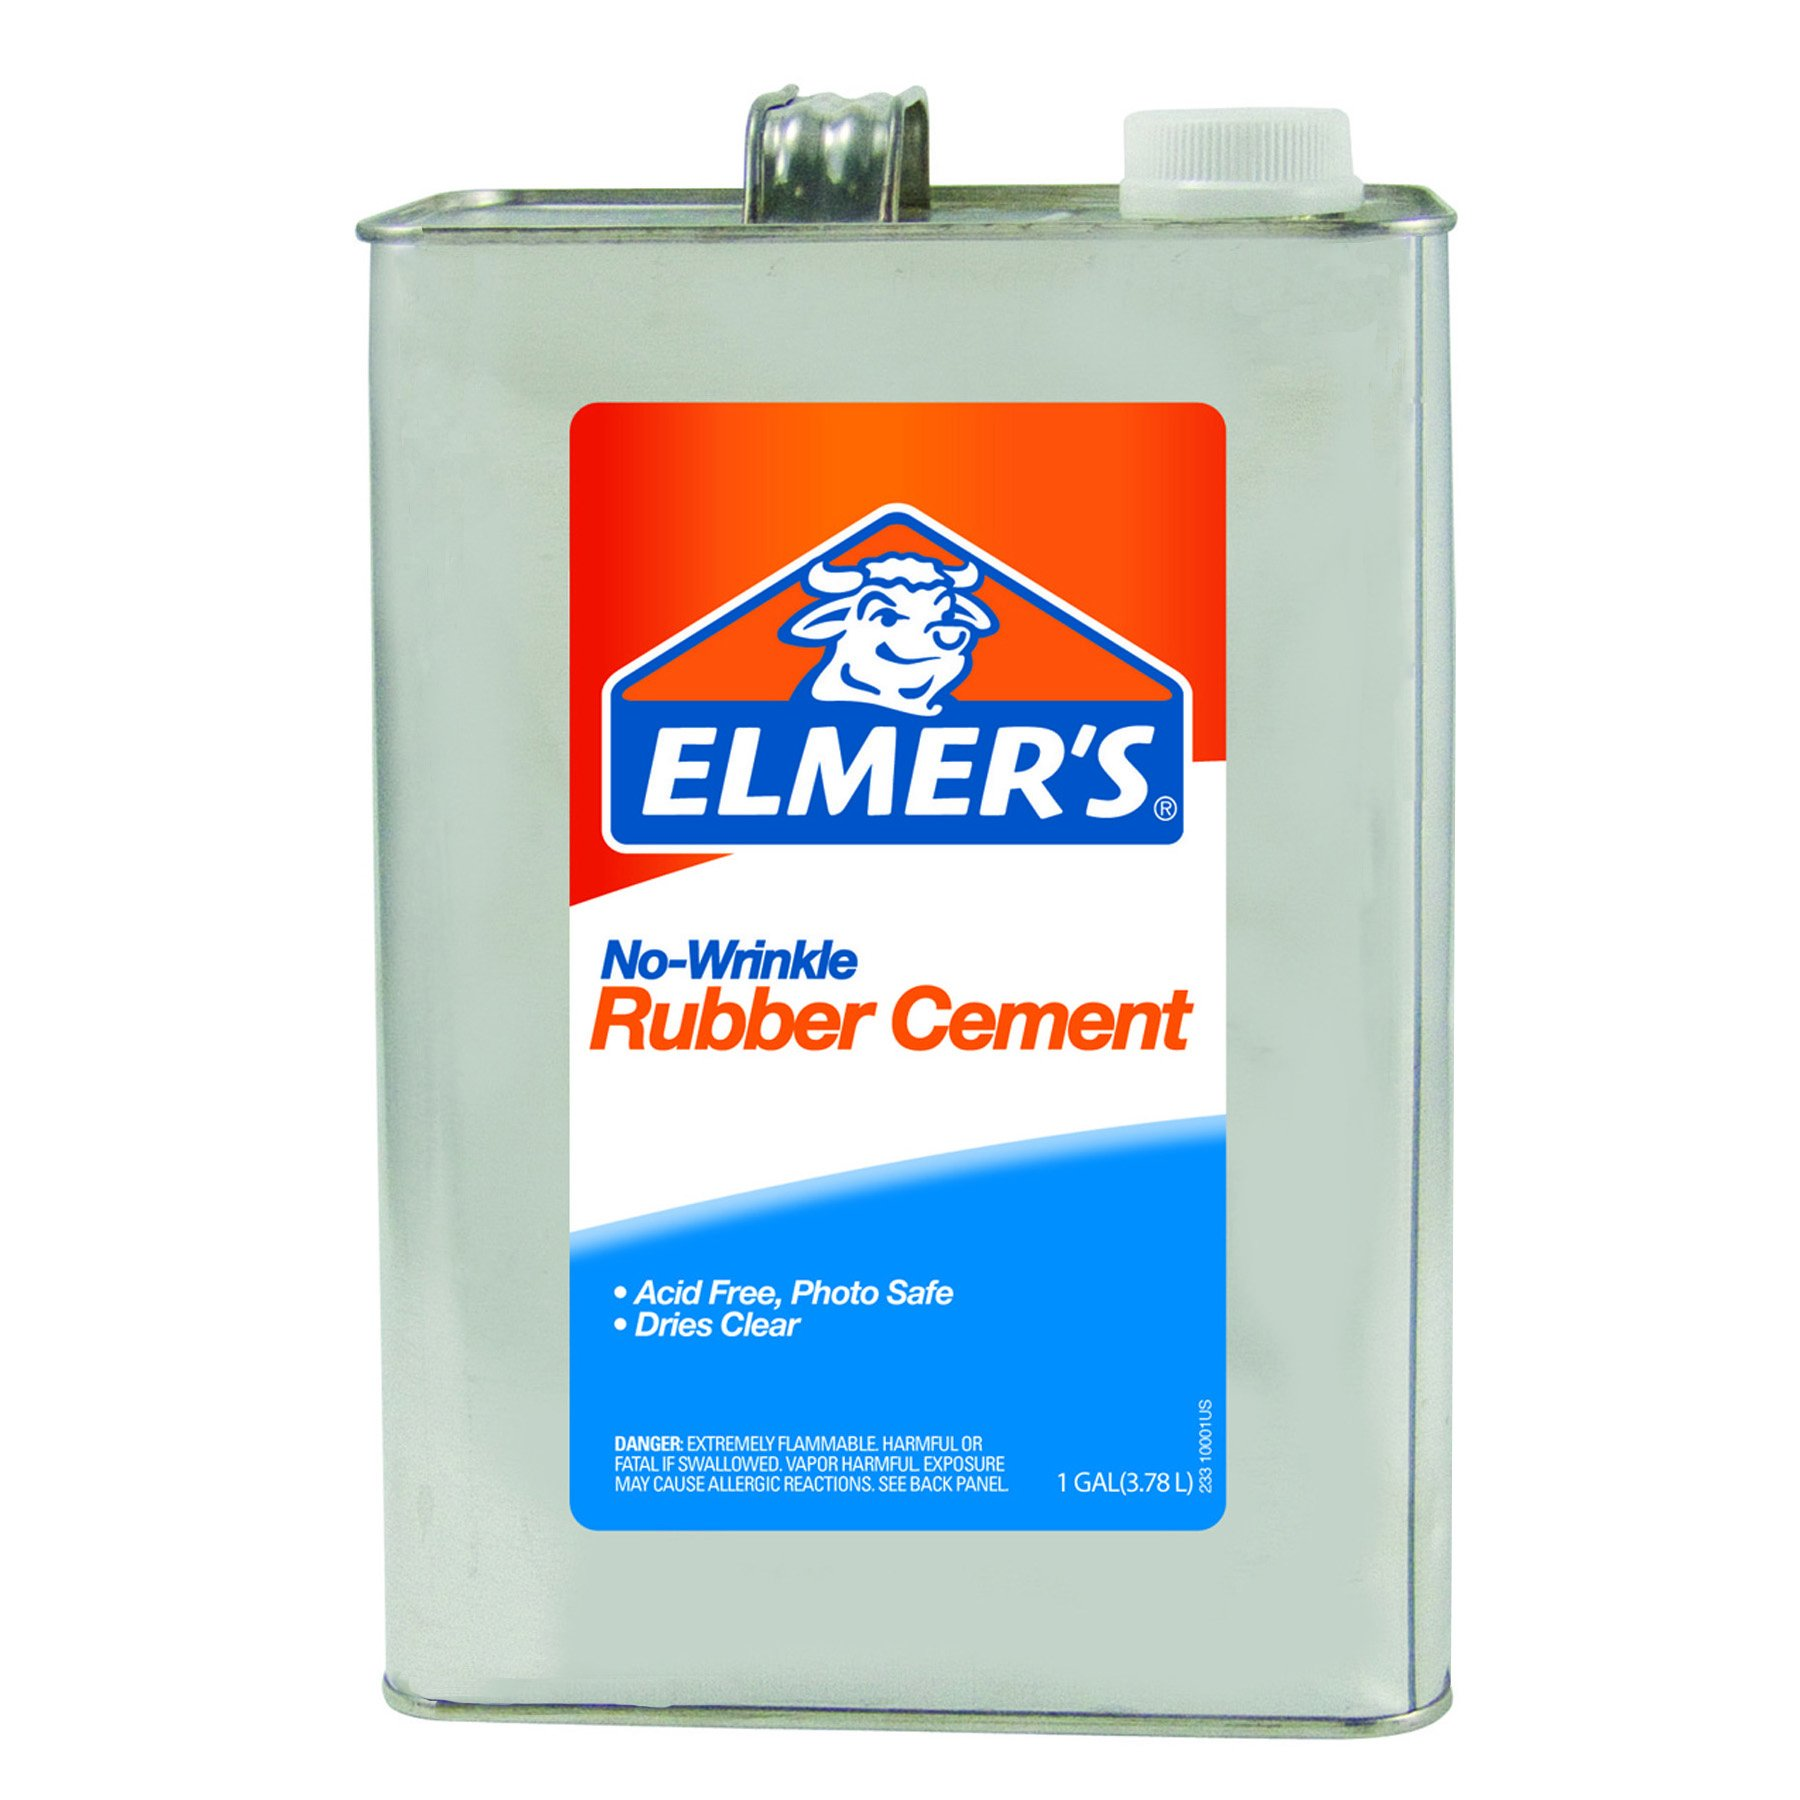 ELMERS No-Wrinkle Rubber Cement, 1 Gallon, Clear (234)